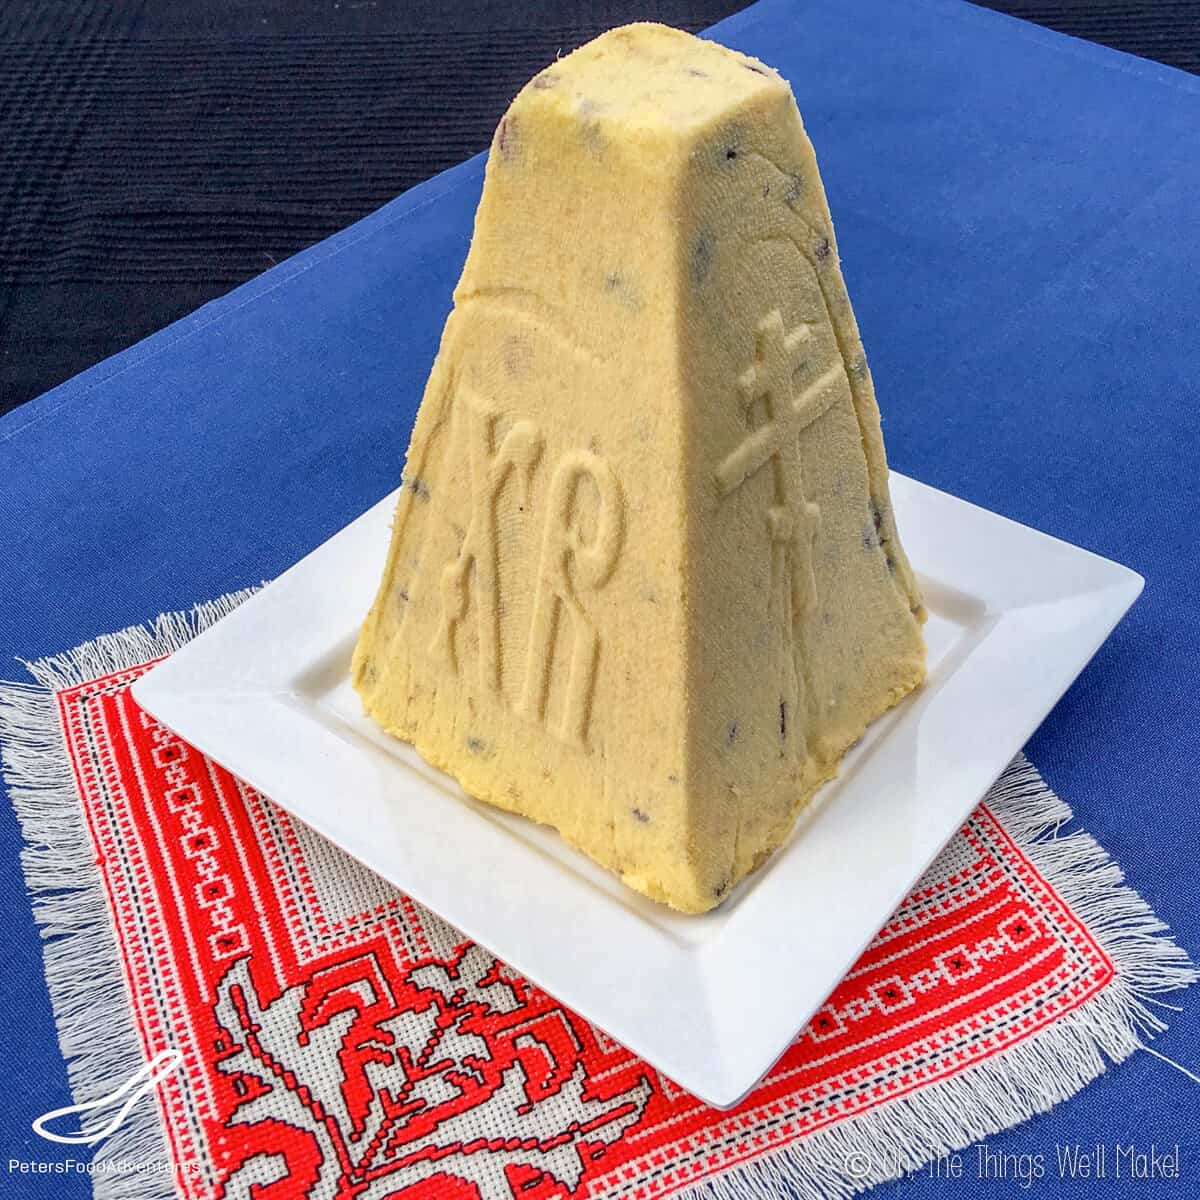 A pyramidally shaped pashka served on a white square plate, which is on top of a red small carpet place mat.